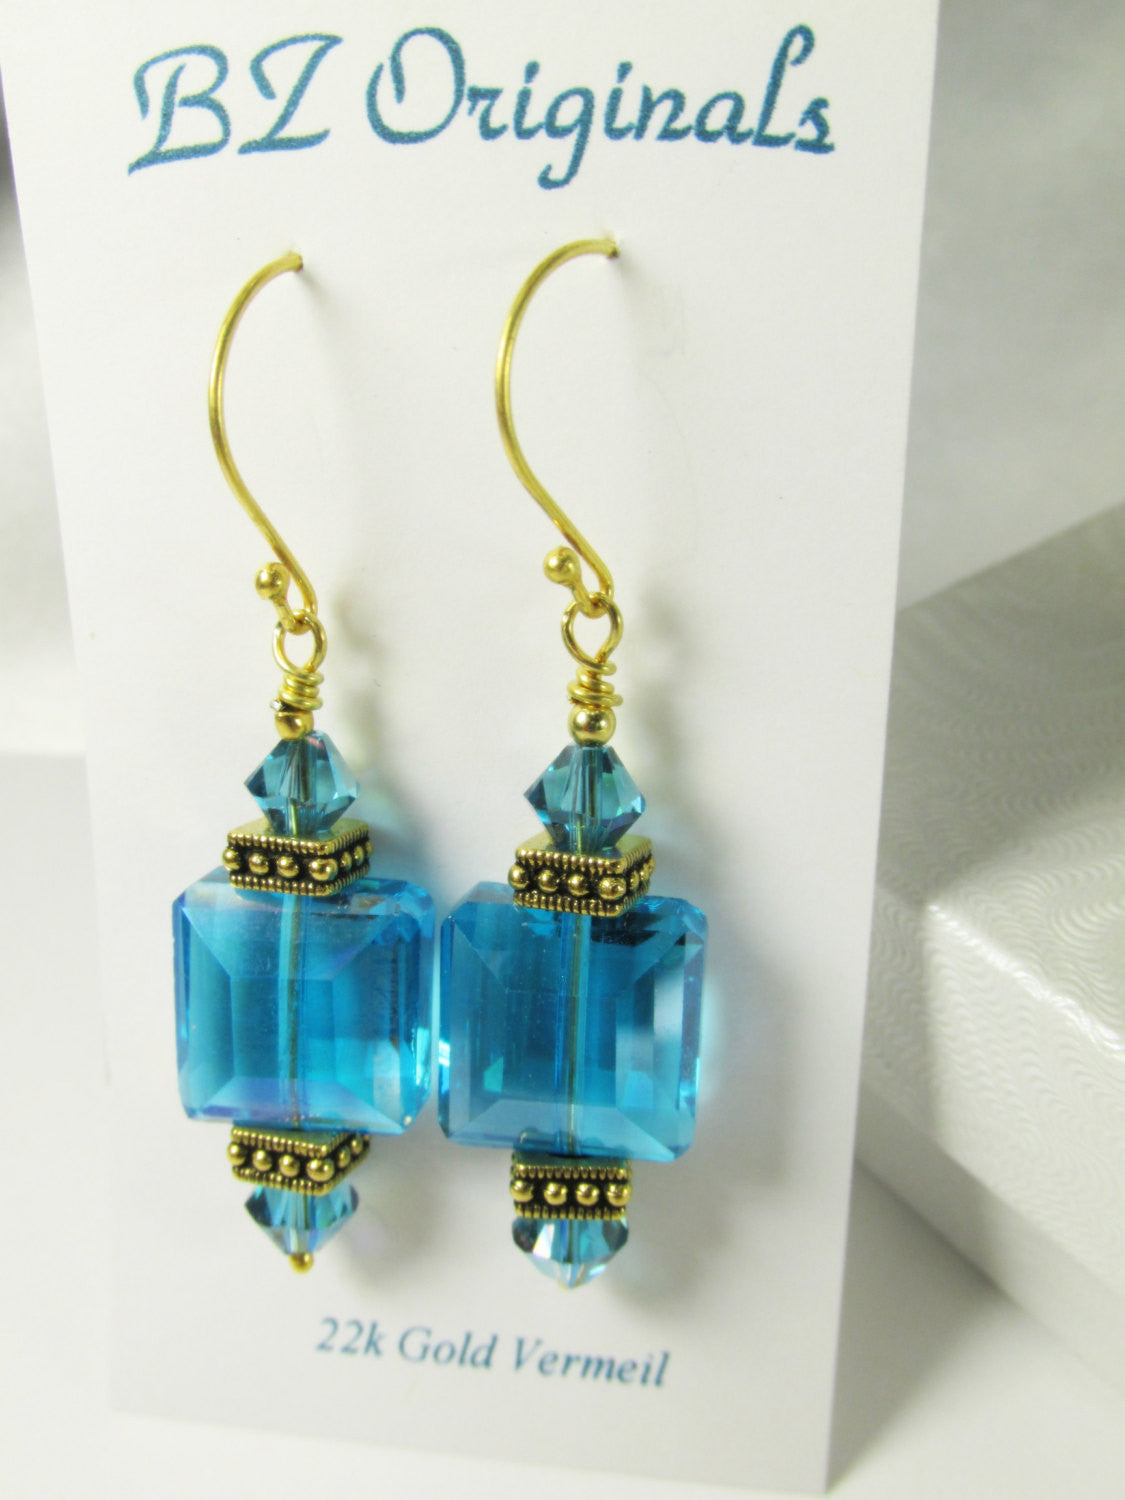 Blue Turquoise Faceted Cube Drops, with Antique Gold Tierra Caste Square Spacers and Swarovski Crystals on 22k Gold Vermeil Wires - Odyssey Creations